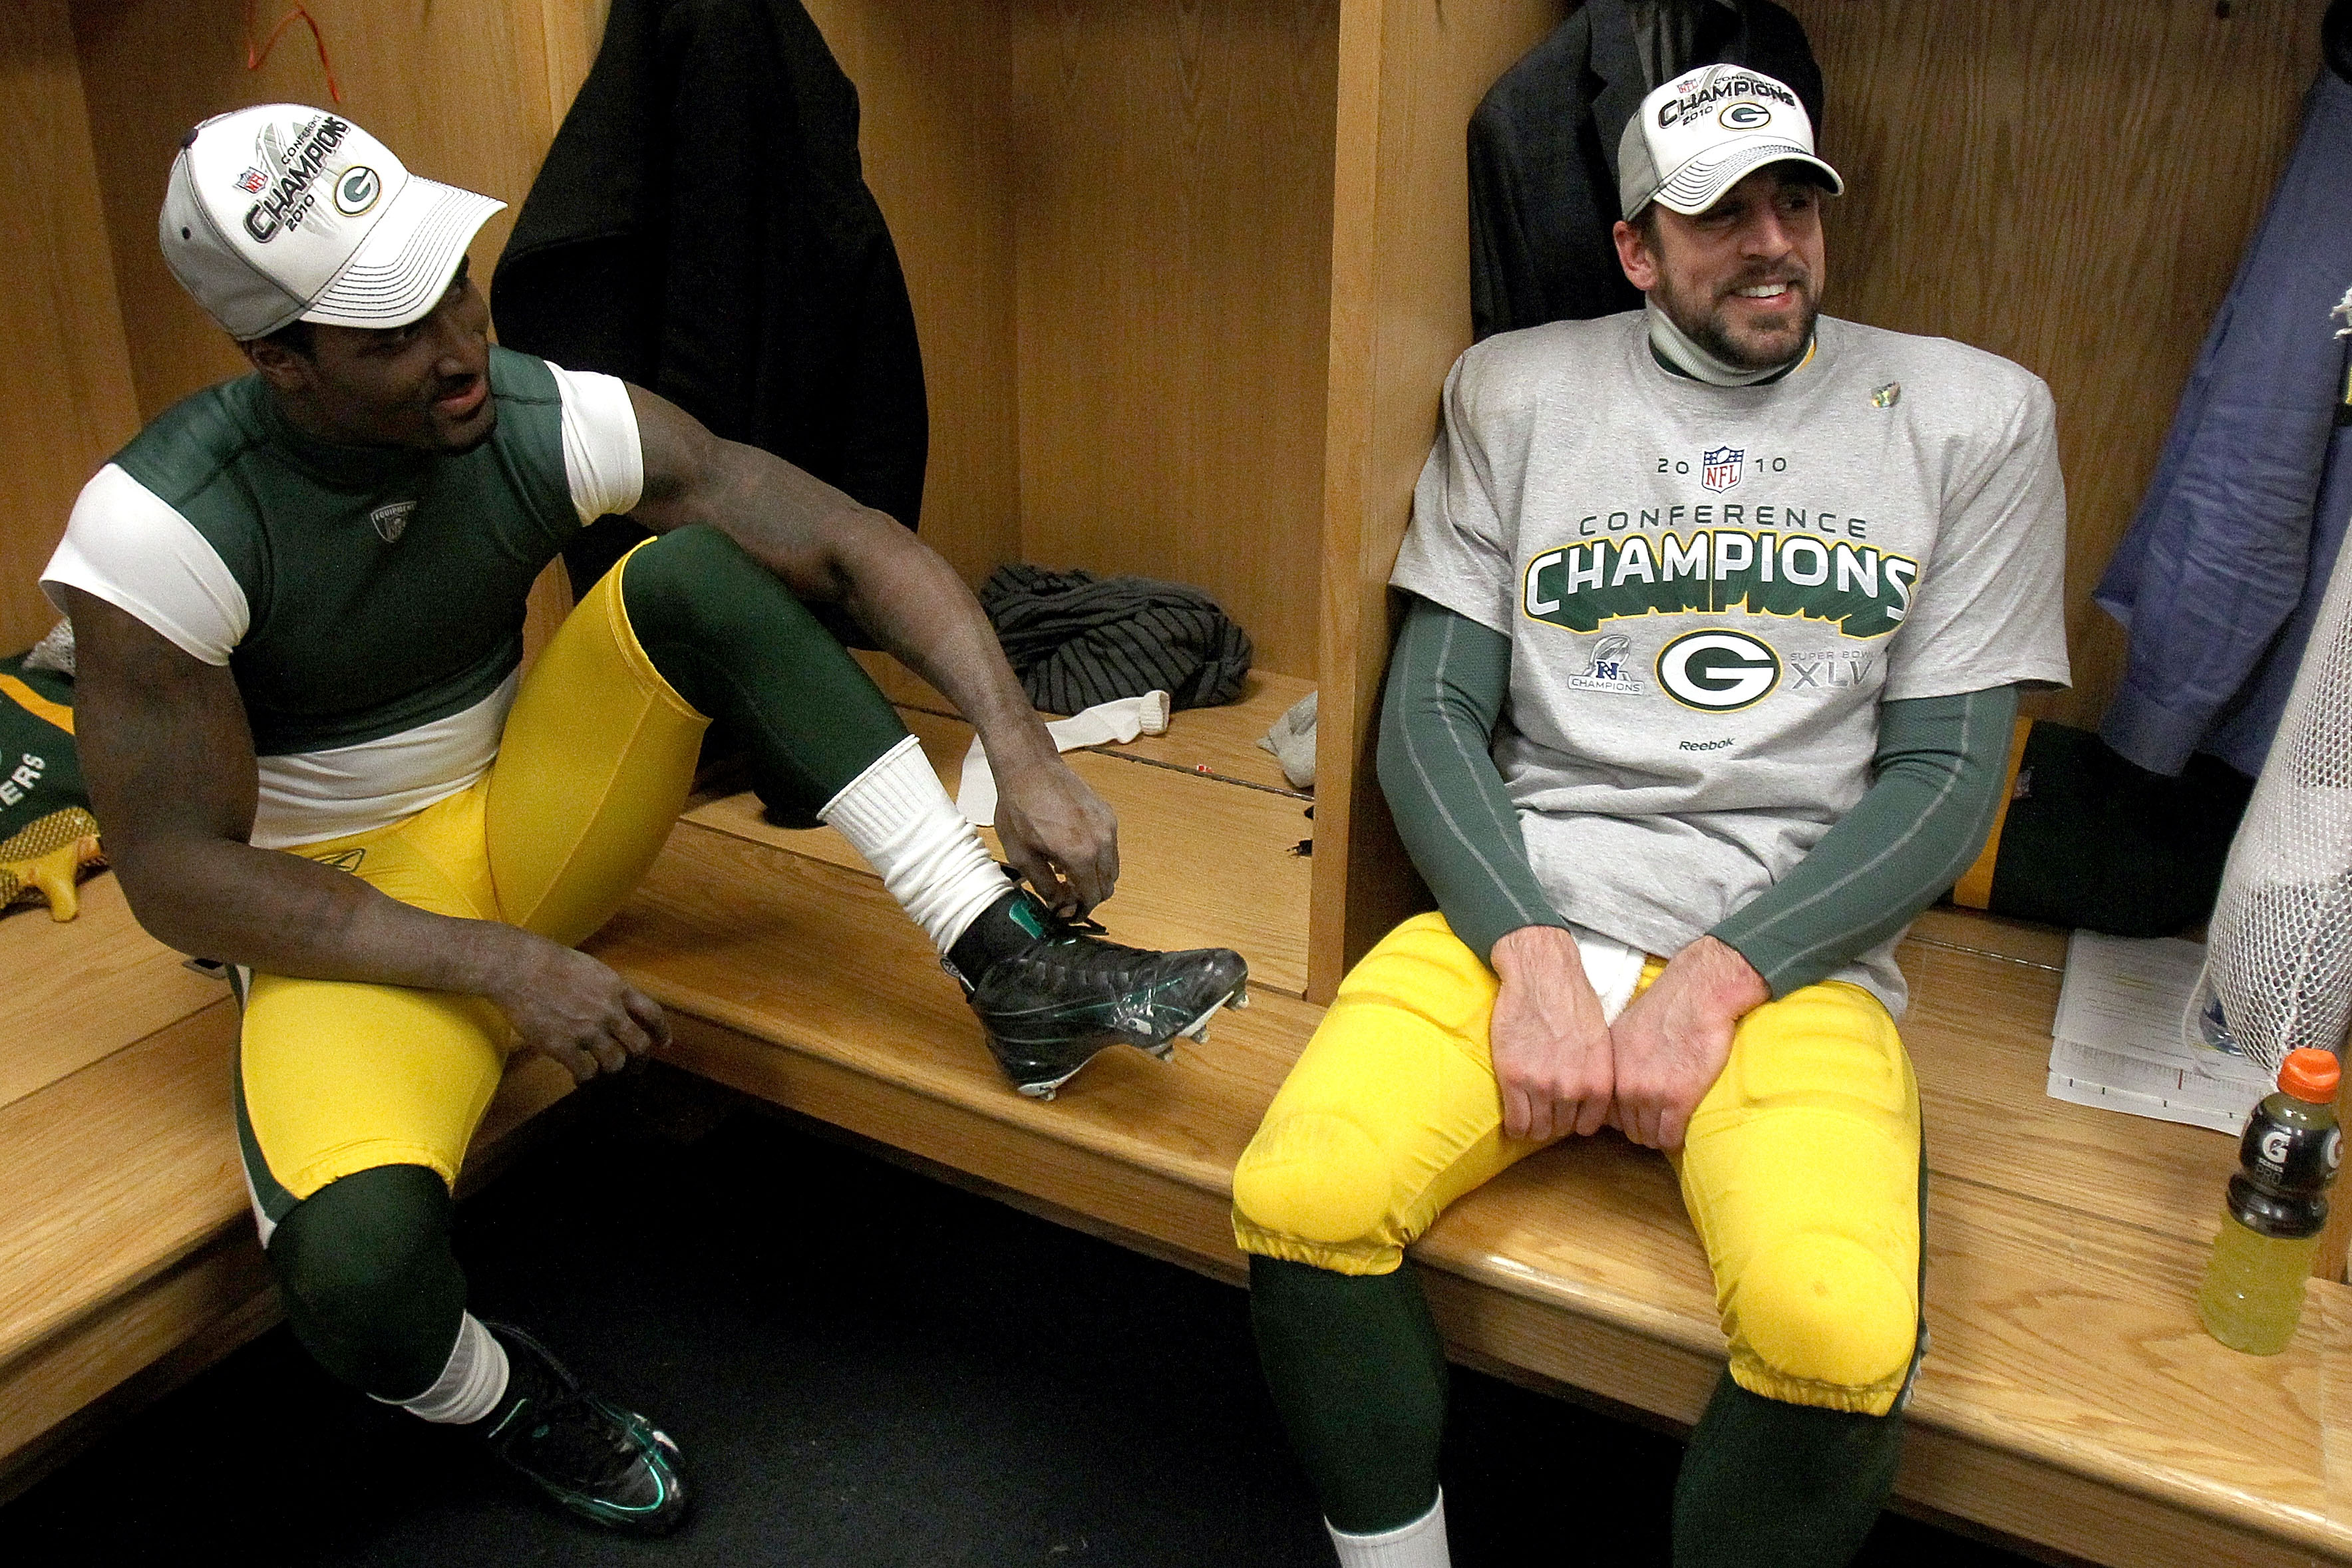 CHICAGO, IL - JANUARY 23:  (R-L) Quarterback Aaron Rodgers #12 and James Jones #89 of the Green Bay Packers celebrate the Packers 21-14 victory against the Chicago Bears in the NFC Championship Game at Soldier Field on January 23, 2011 in Chicago, Illinoi